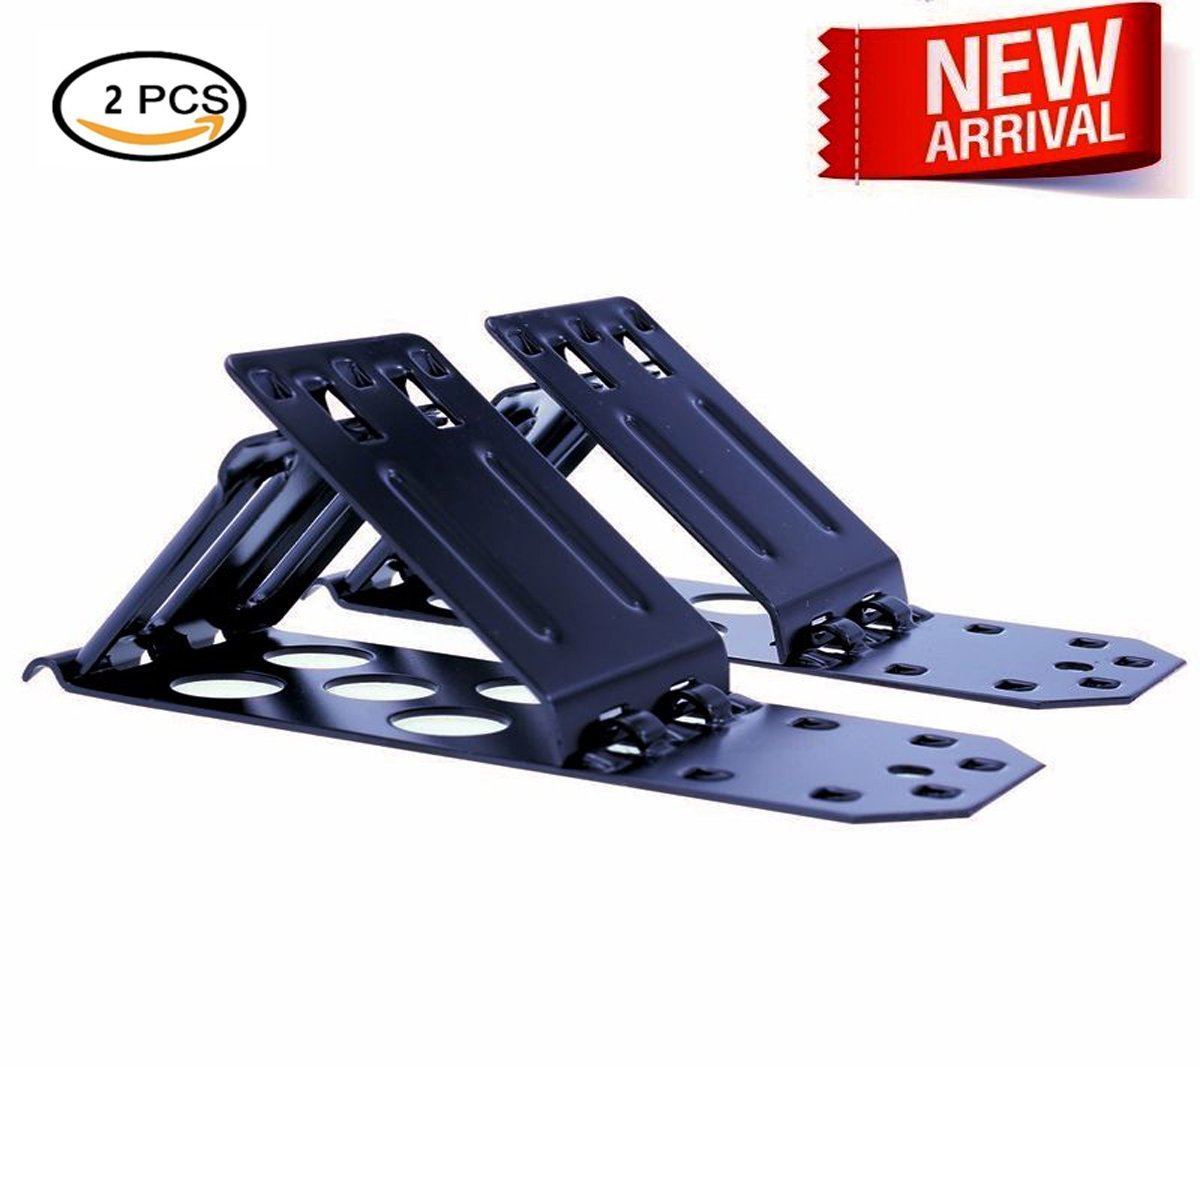 SAUNICE Metal Folding Triangle Wheel Chock Stop Stoper Tire Nonslip Supporter 2 Set,7.5'' Length, 2.75'' Width, 3.5'' Height